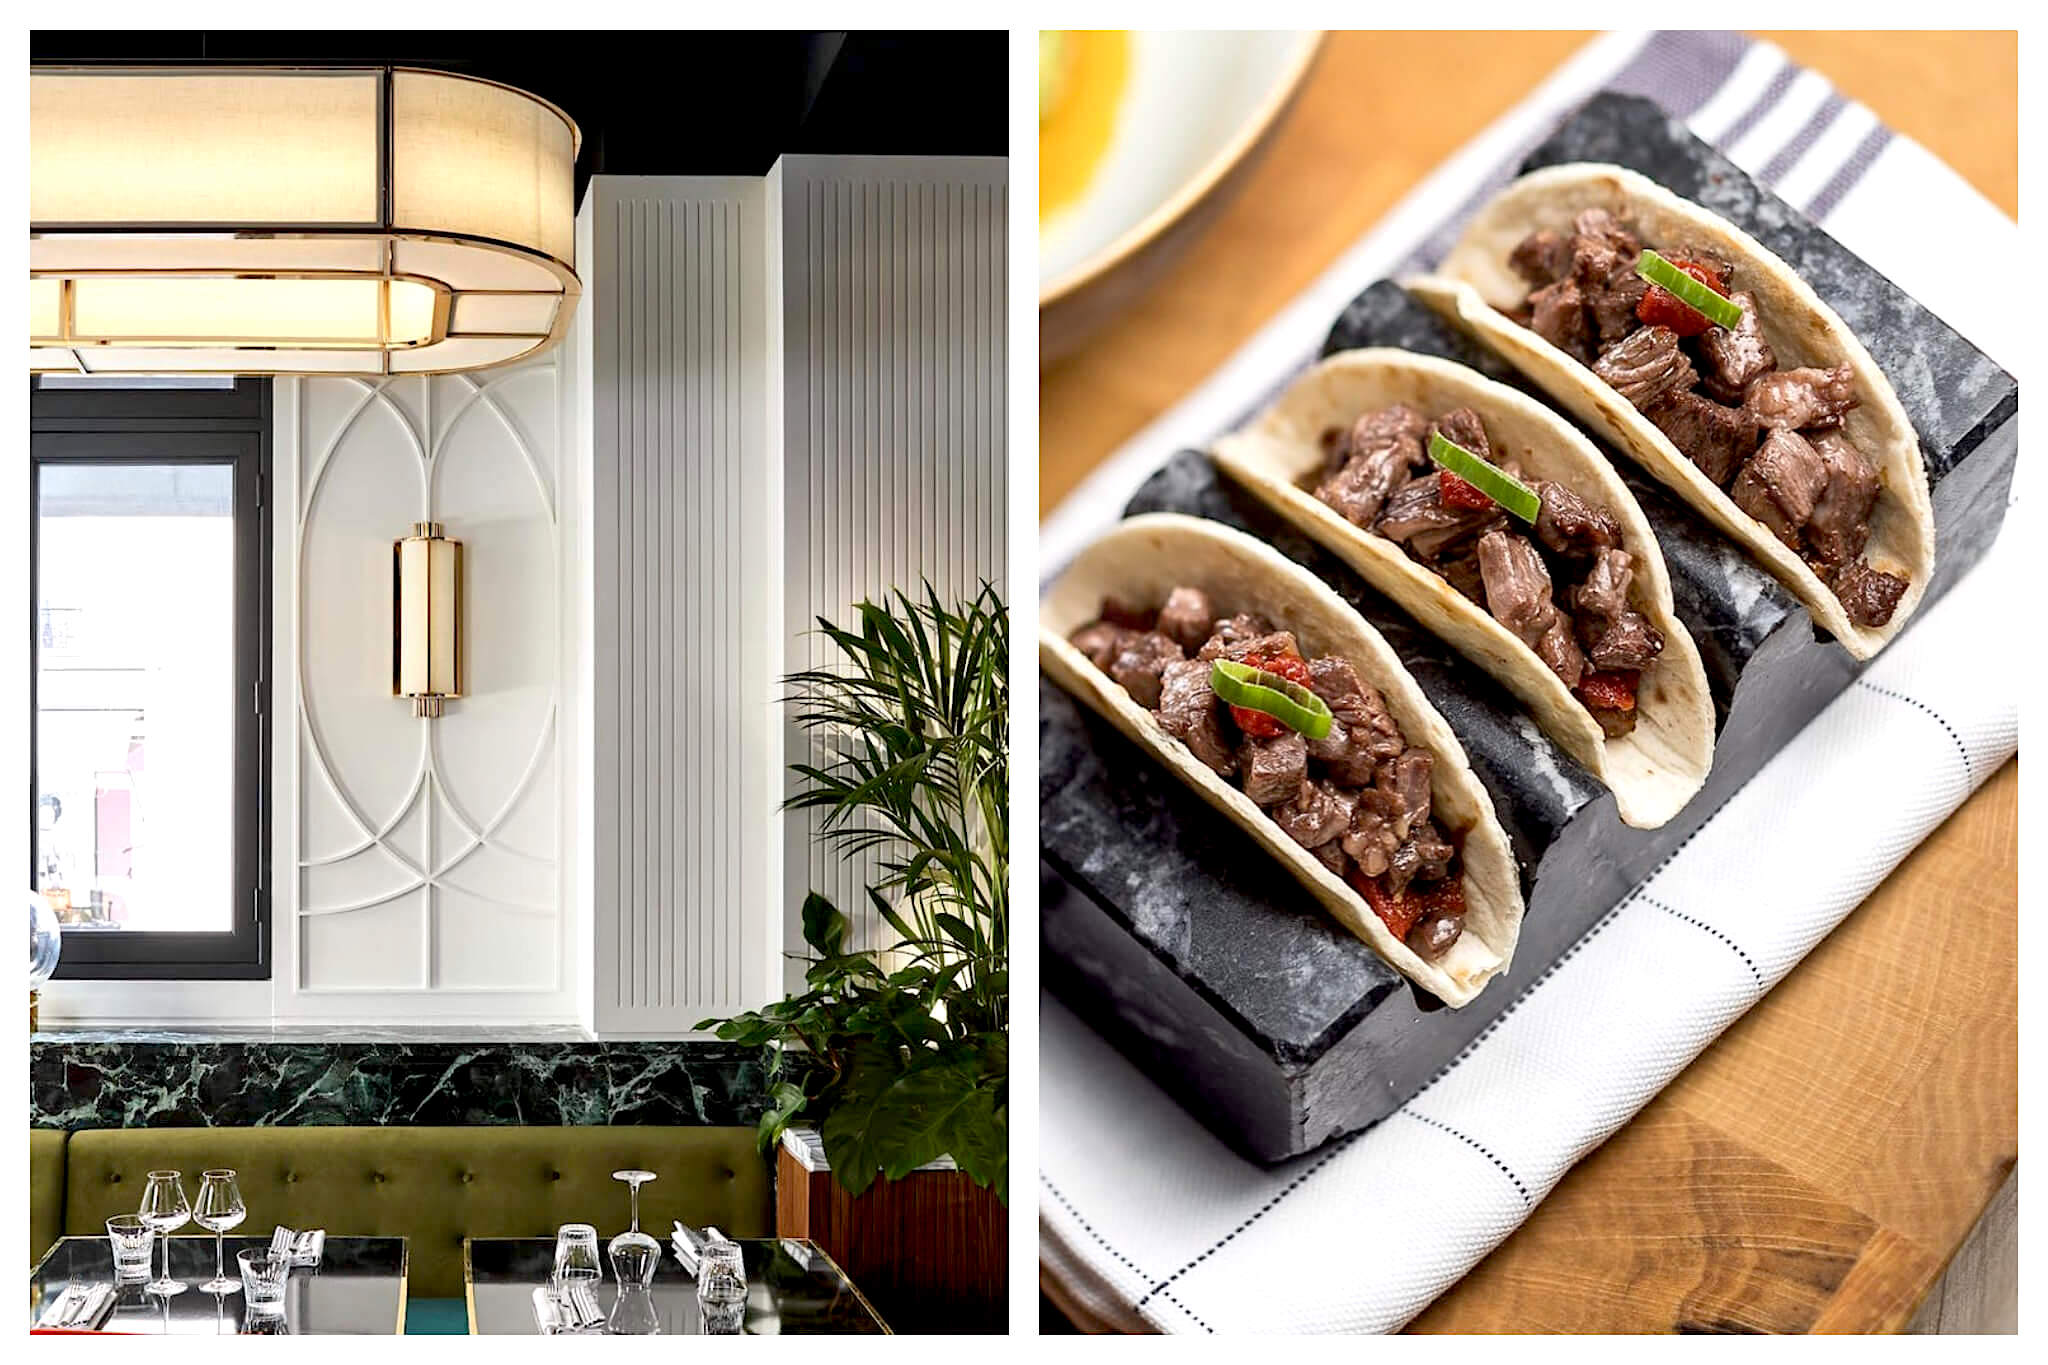 Left: The inside of Beefbar restaurant near the Champs Elysées in Paris. The interior has white walls, large green booth seating, modern lights and green plants, Right: Three beef tacos at Beefbar in Paris sit on a slab of marble